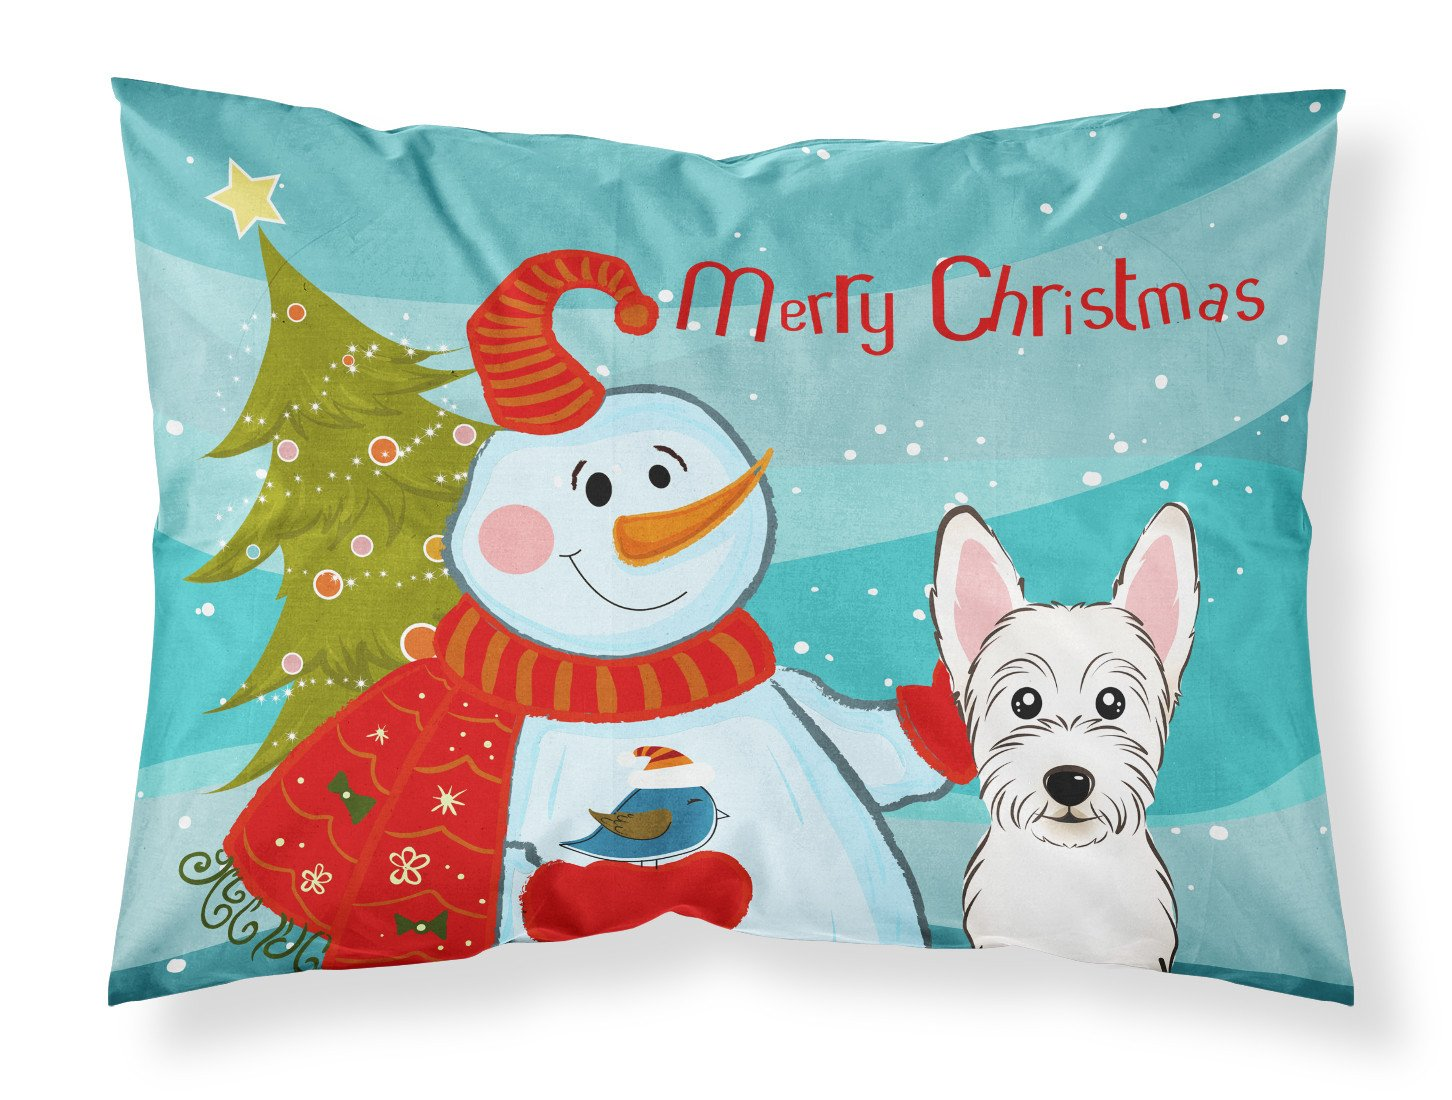 Snowman with Westie Fabric Standard Pillowcase BB1846PILLOWCASE by Caroline's Treasures